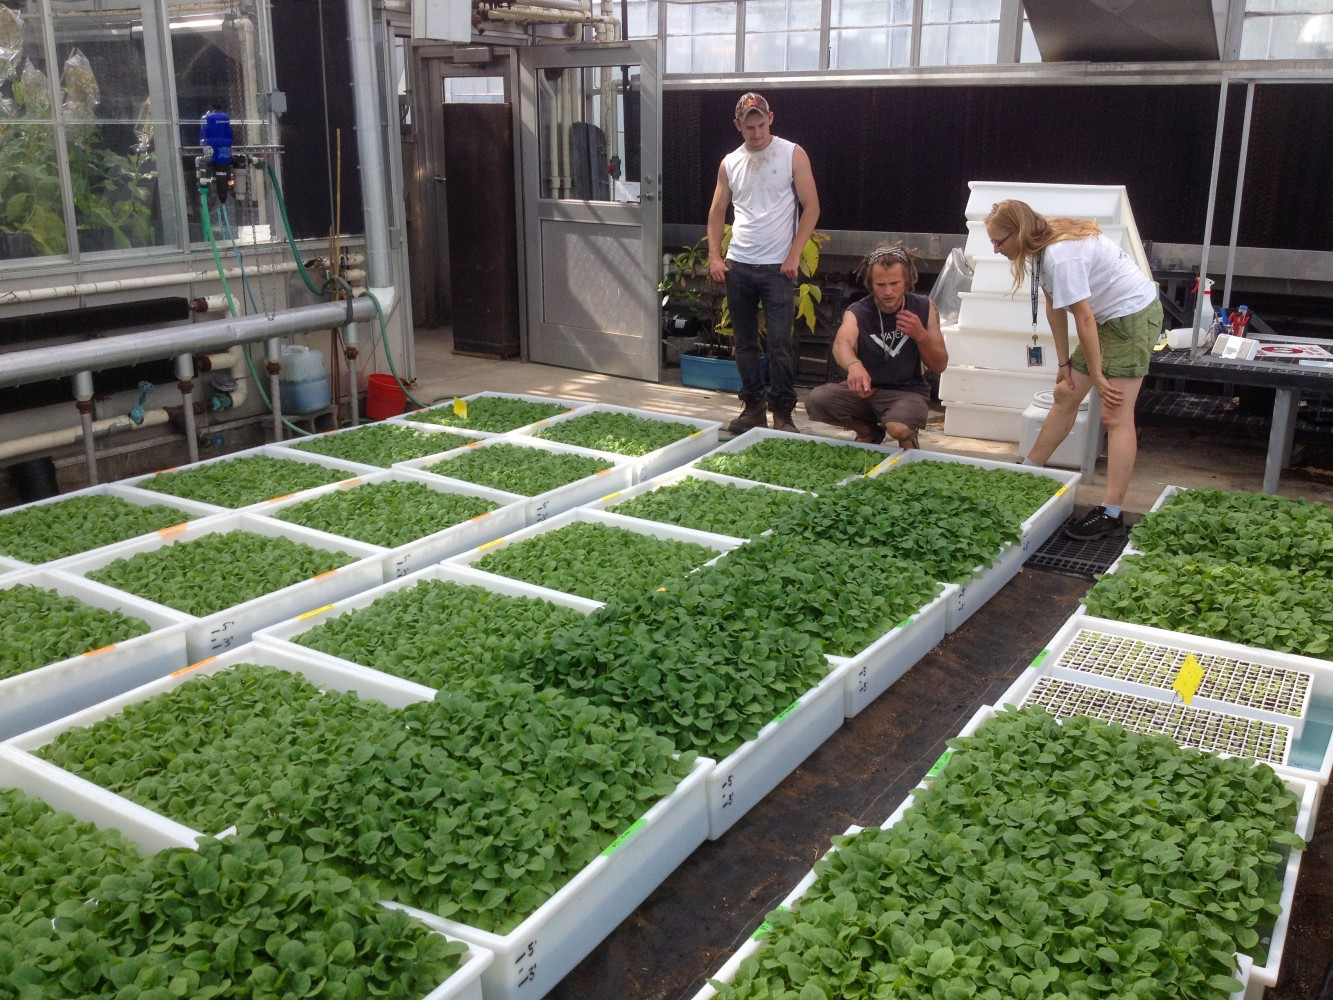 Steven Huber (left), David Drag (center), and Katarzyna Glowacka (right) inspect tobacco plants engineered to cheaply manufacture high-value proteins before transplant.